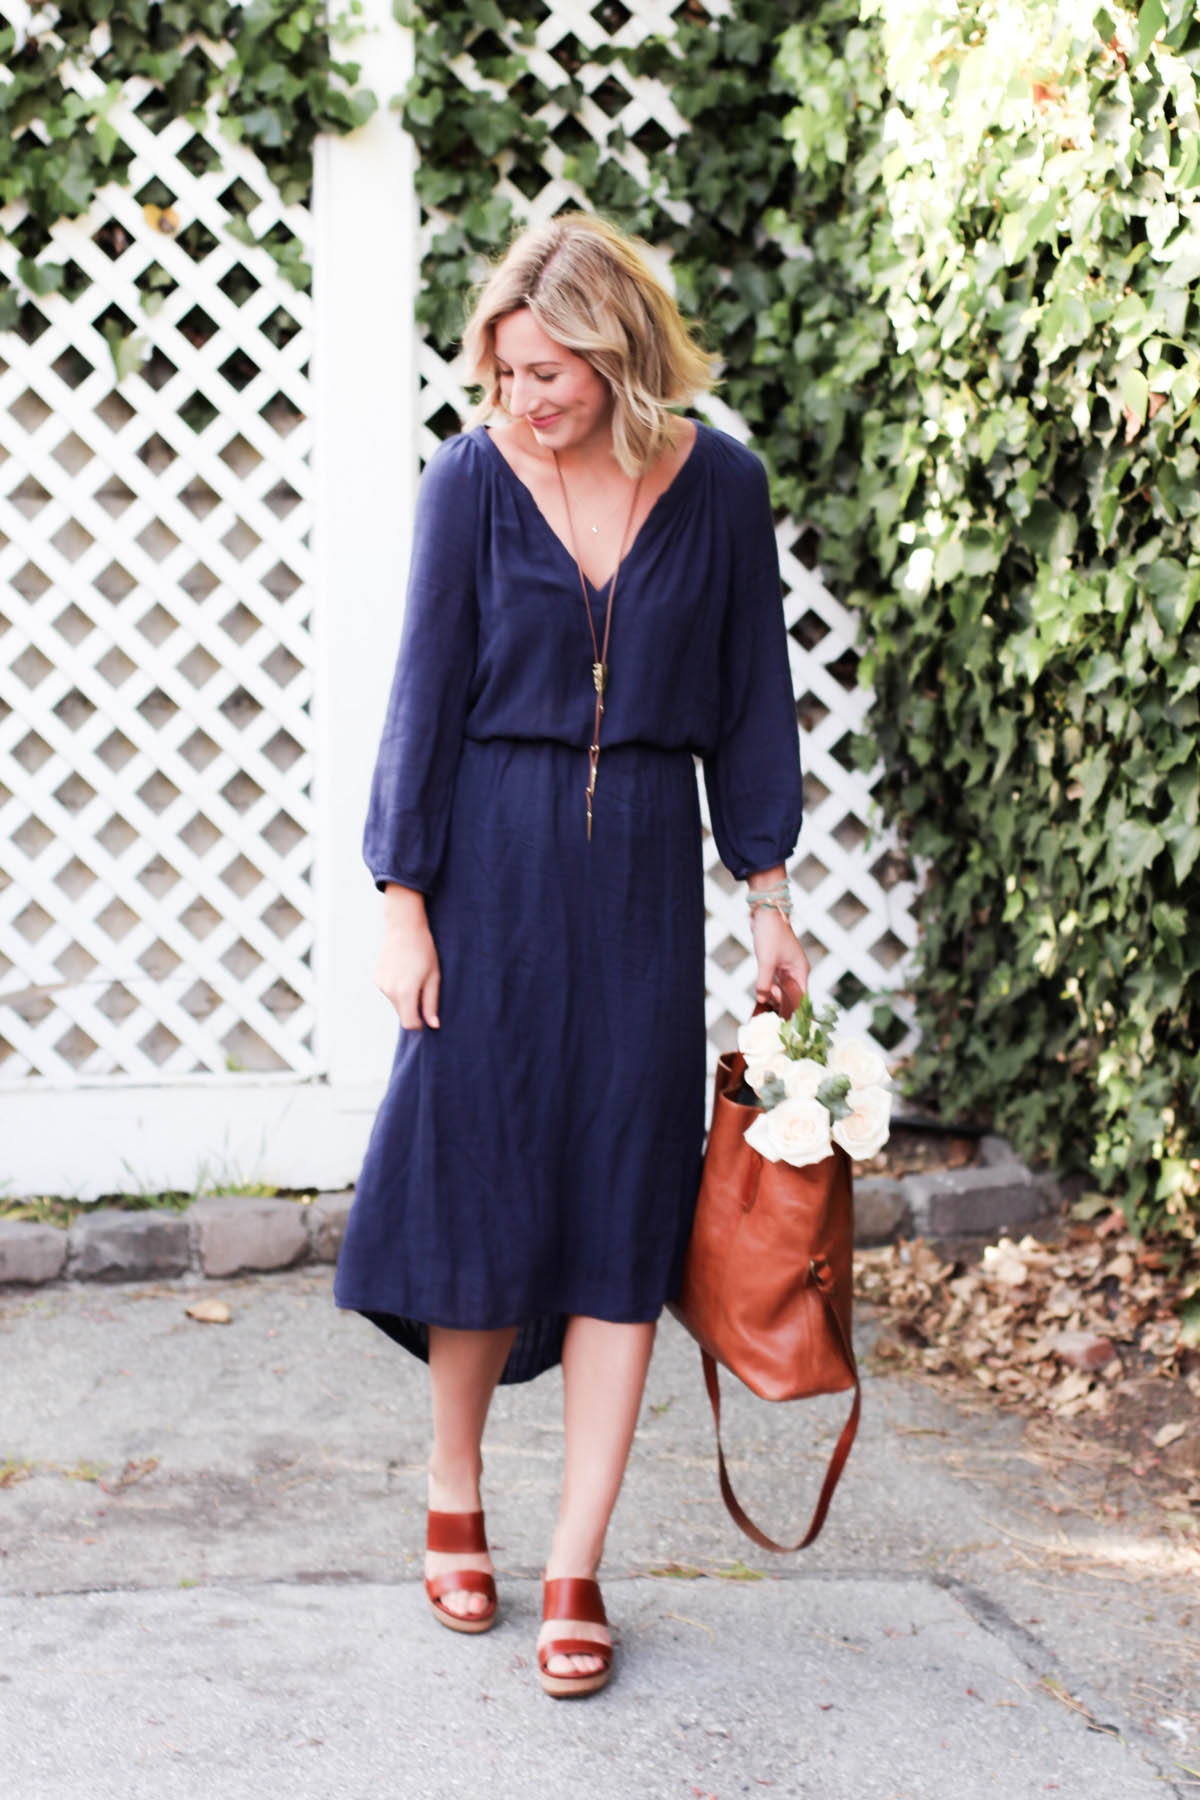 Amanda Holstein in spring outfit navy dress and leather sandals